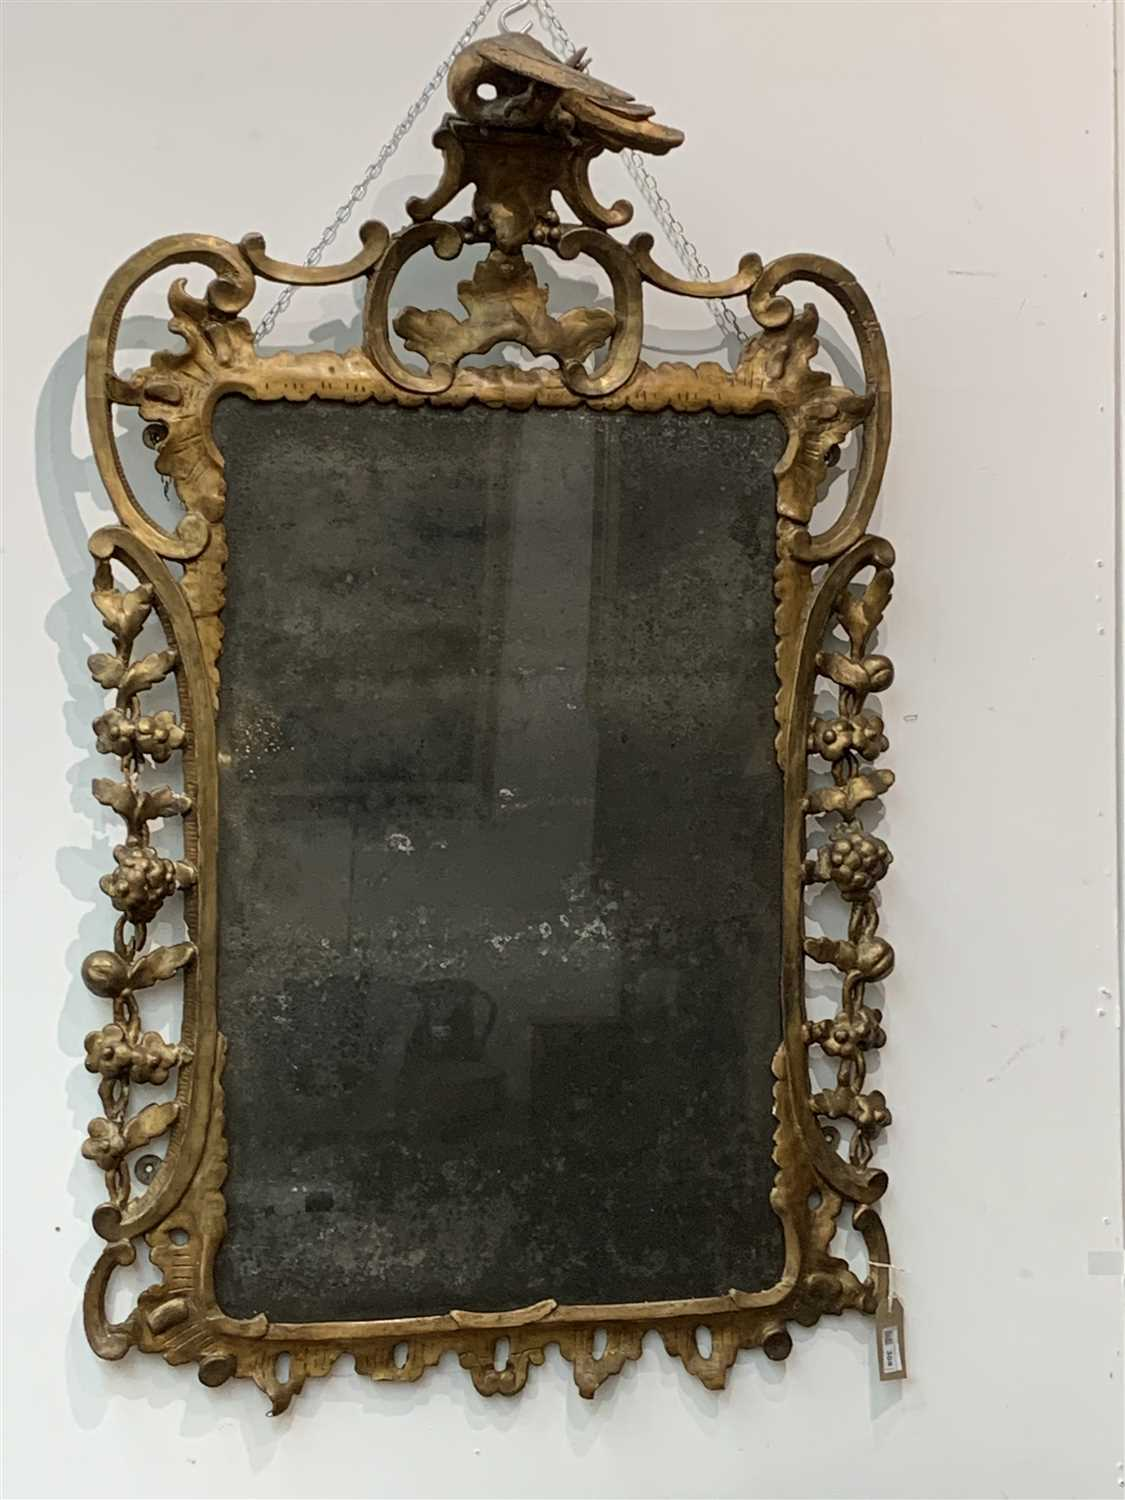 Lot 308-A giltwood pier glass, early 18th century.